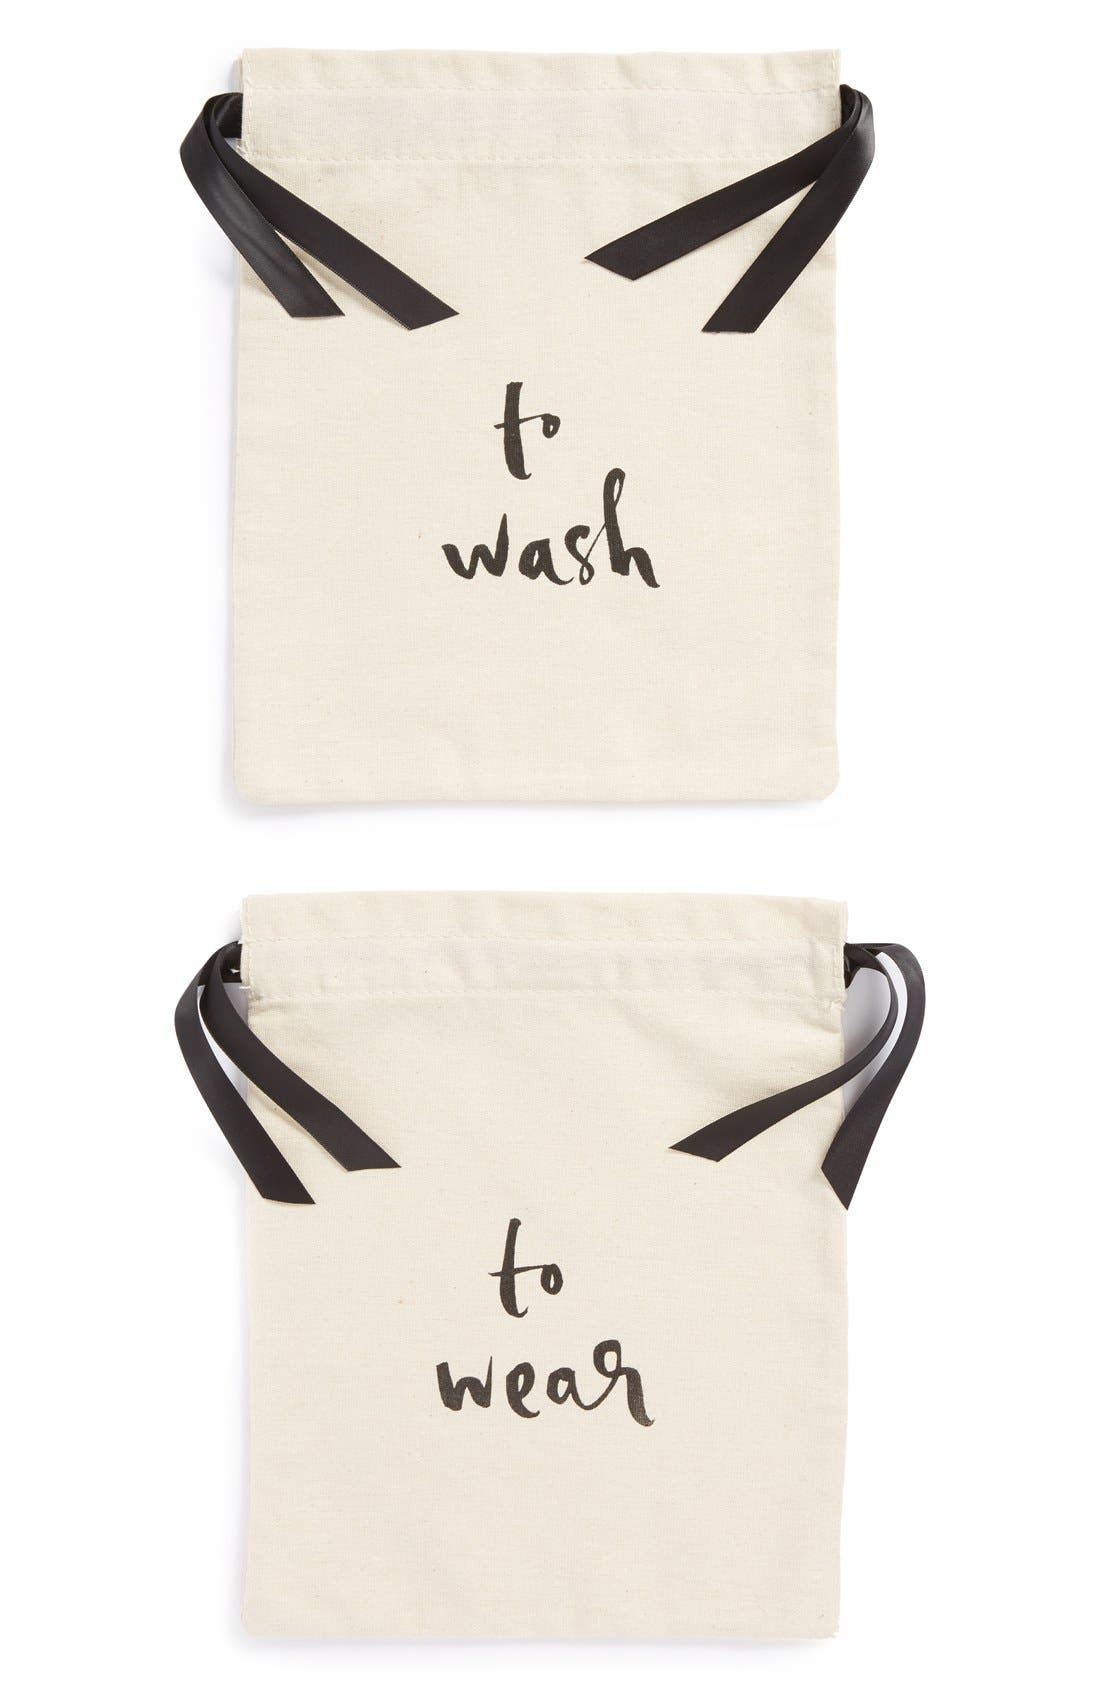 kate spade new york 'wash and wear' lingerie bag set